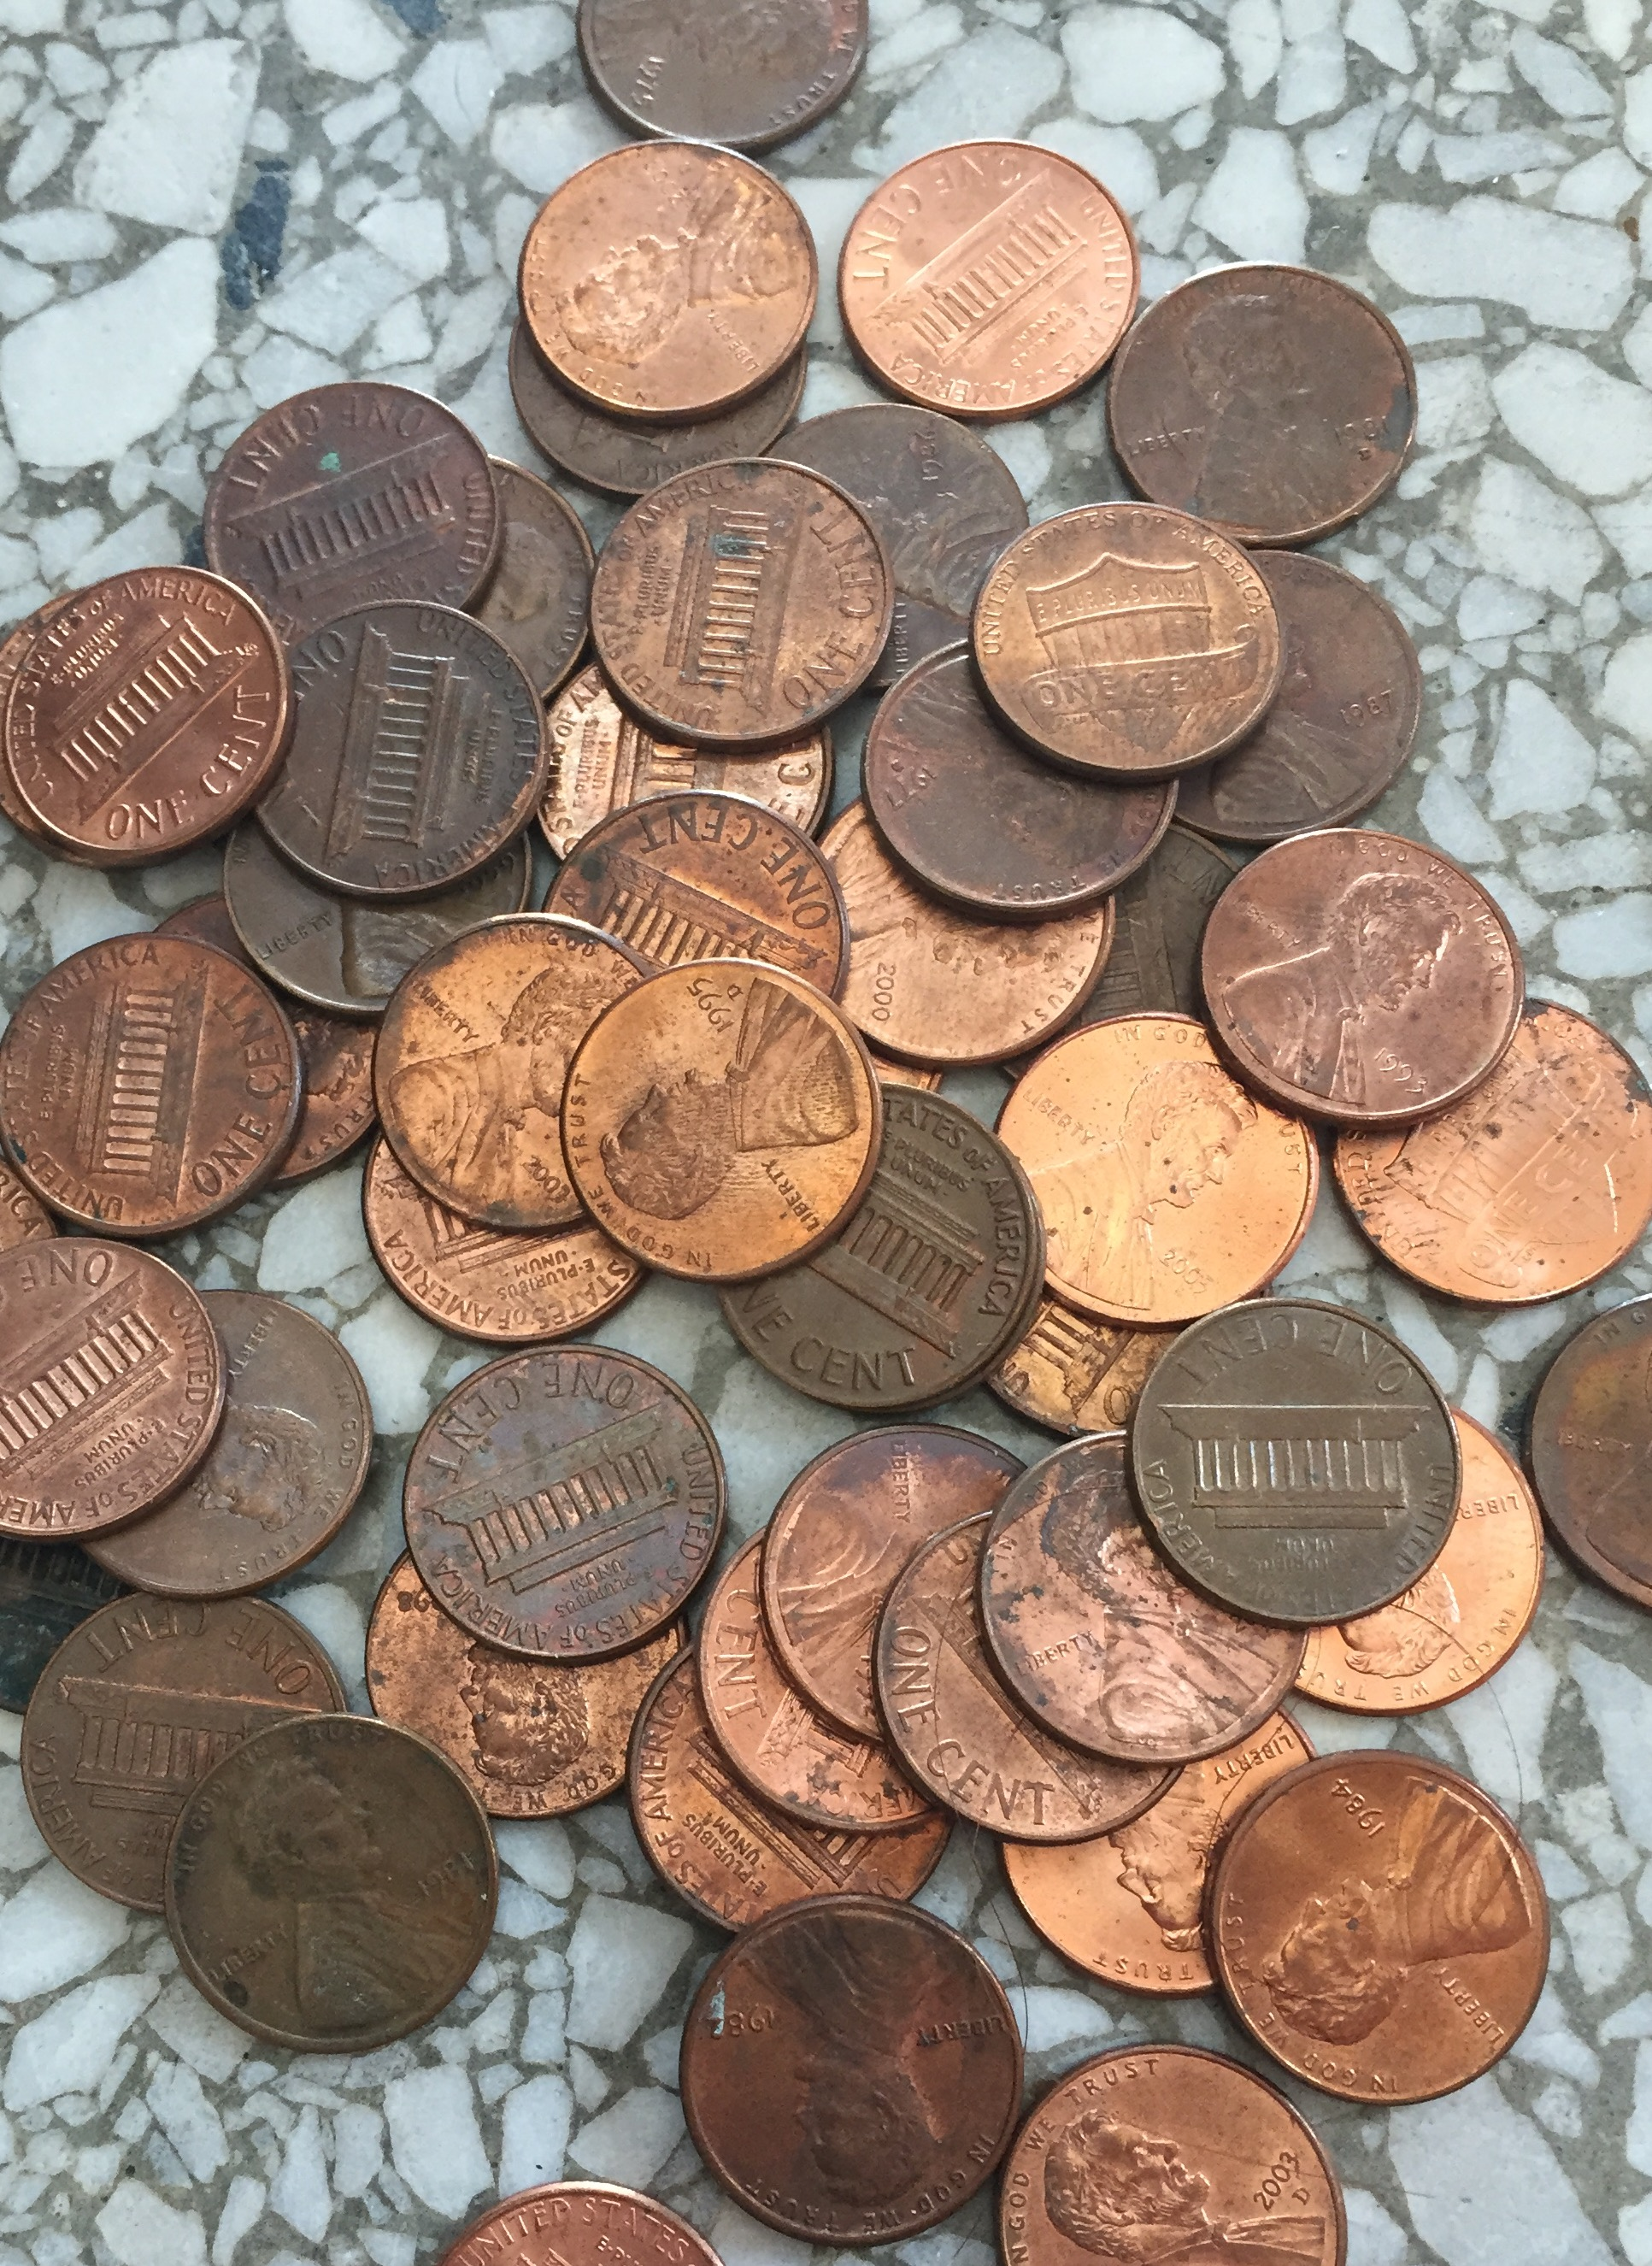 Pennies up close